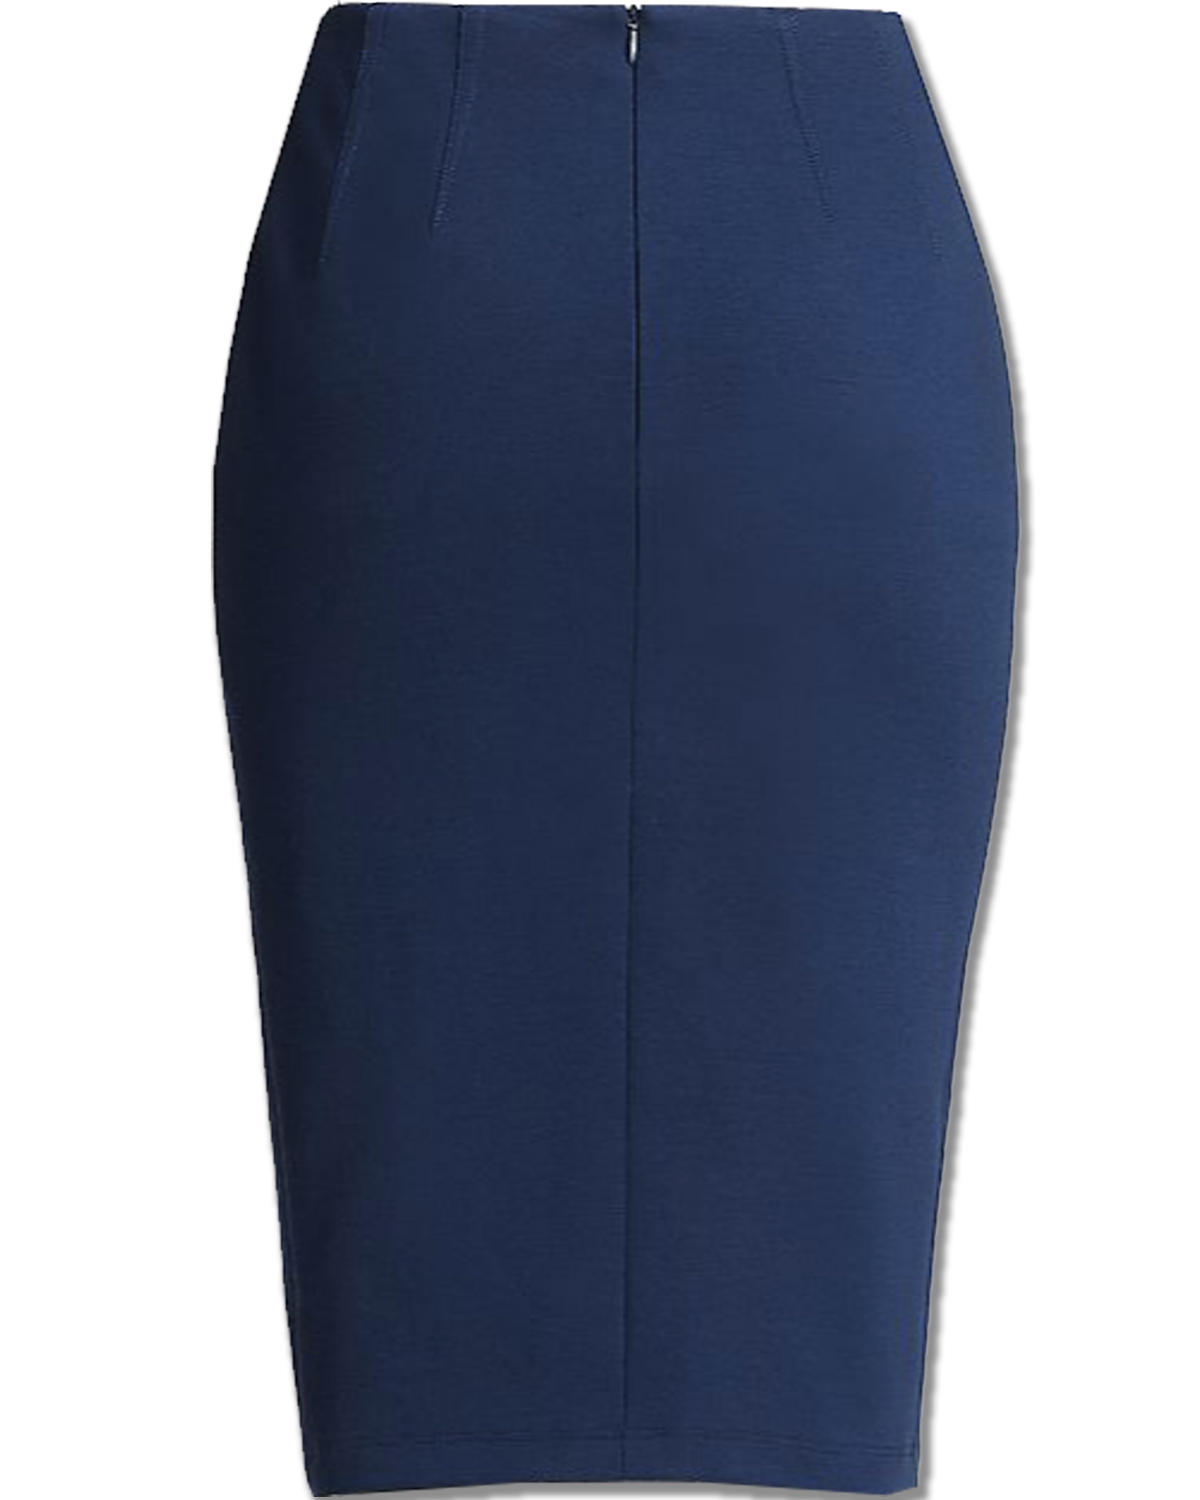 pencil skirts blue ponte knit pencil skirt bsdmtnk